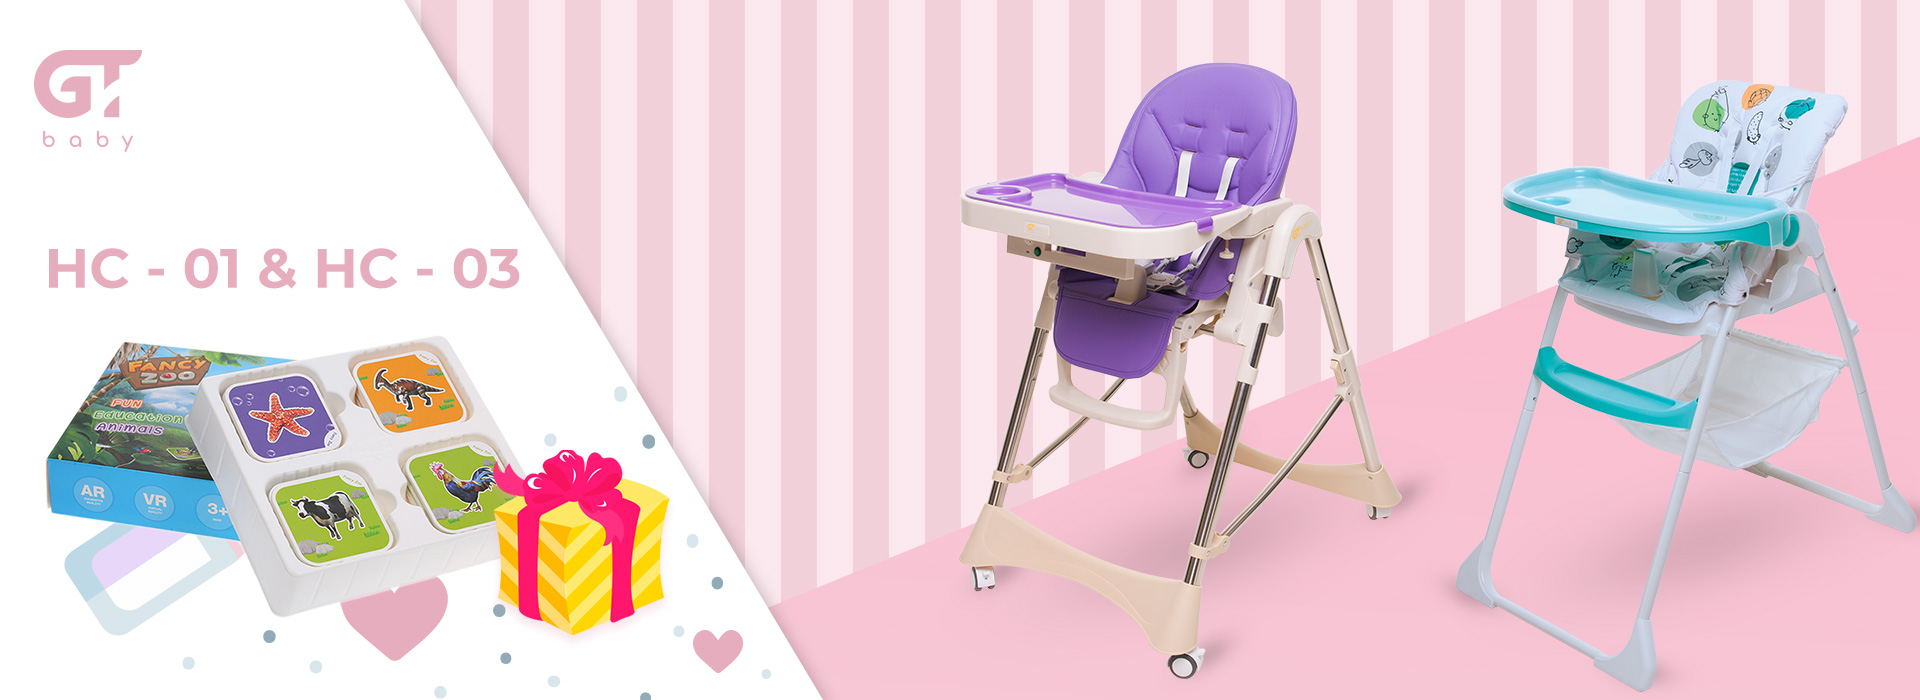 Action GT Baby highchairs